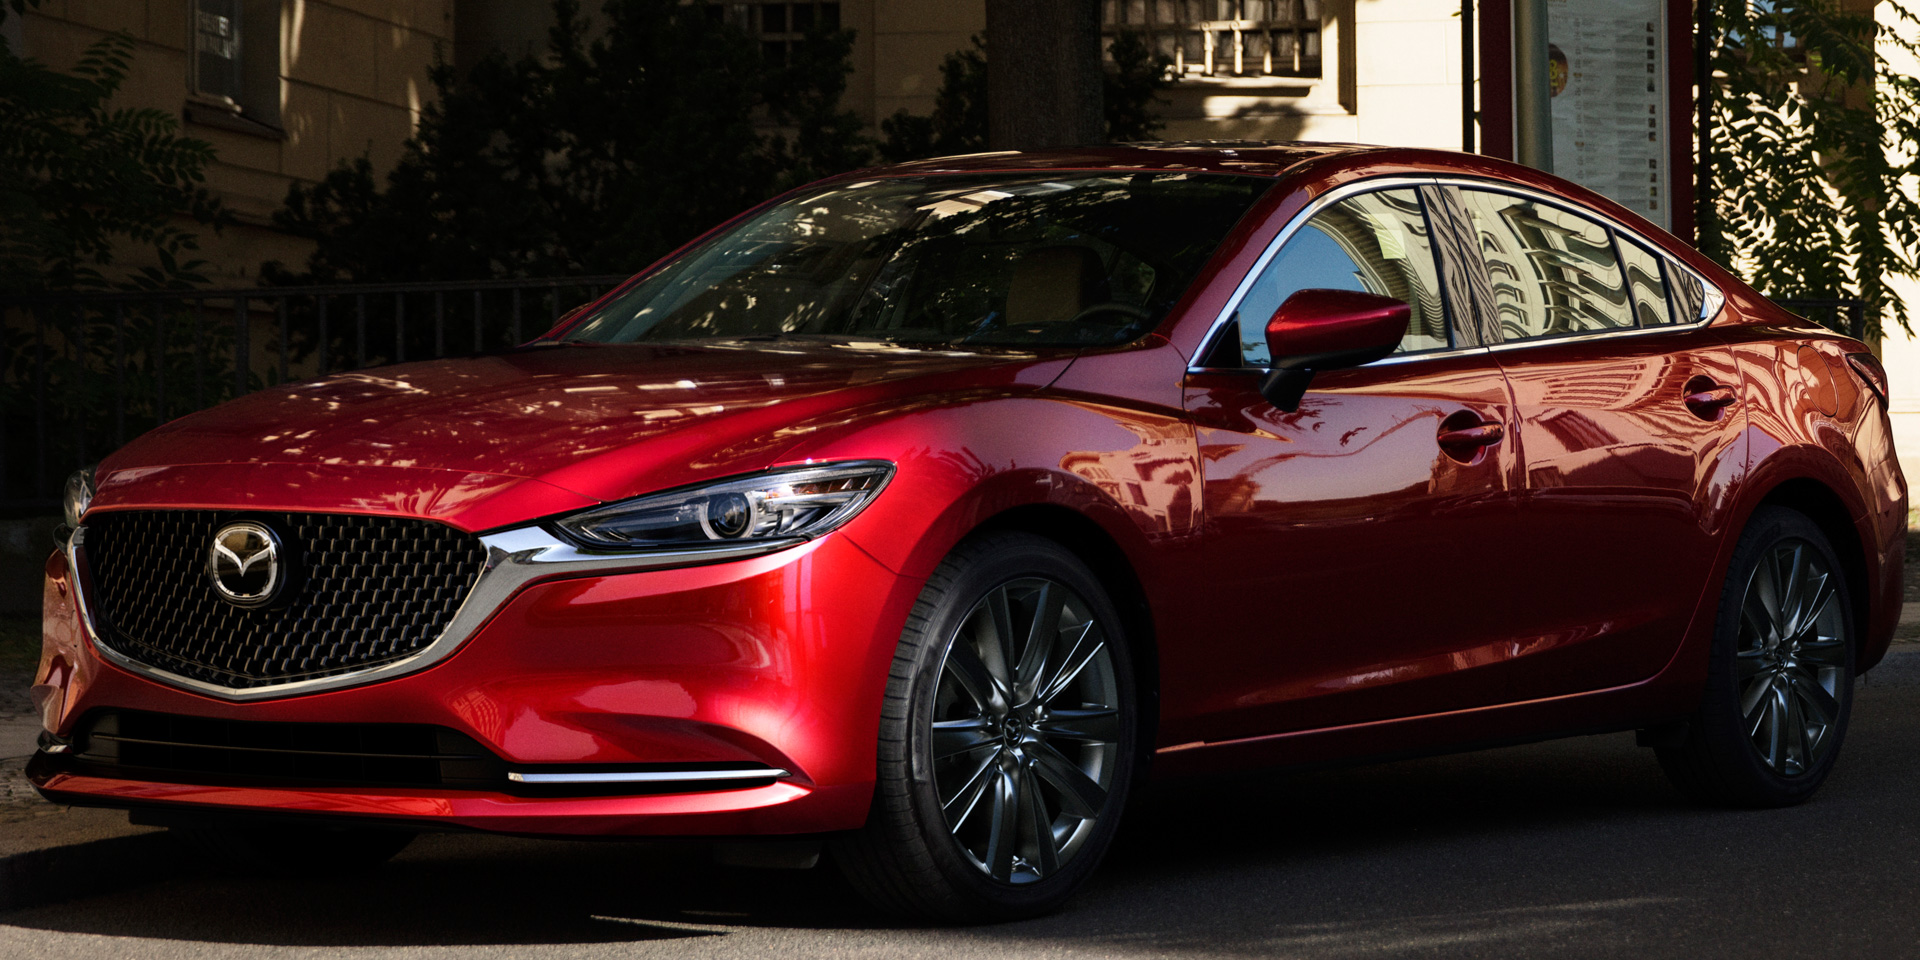 2018 Mazda 6 Vehicles On Display Chicago Auto Show